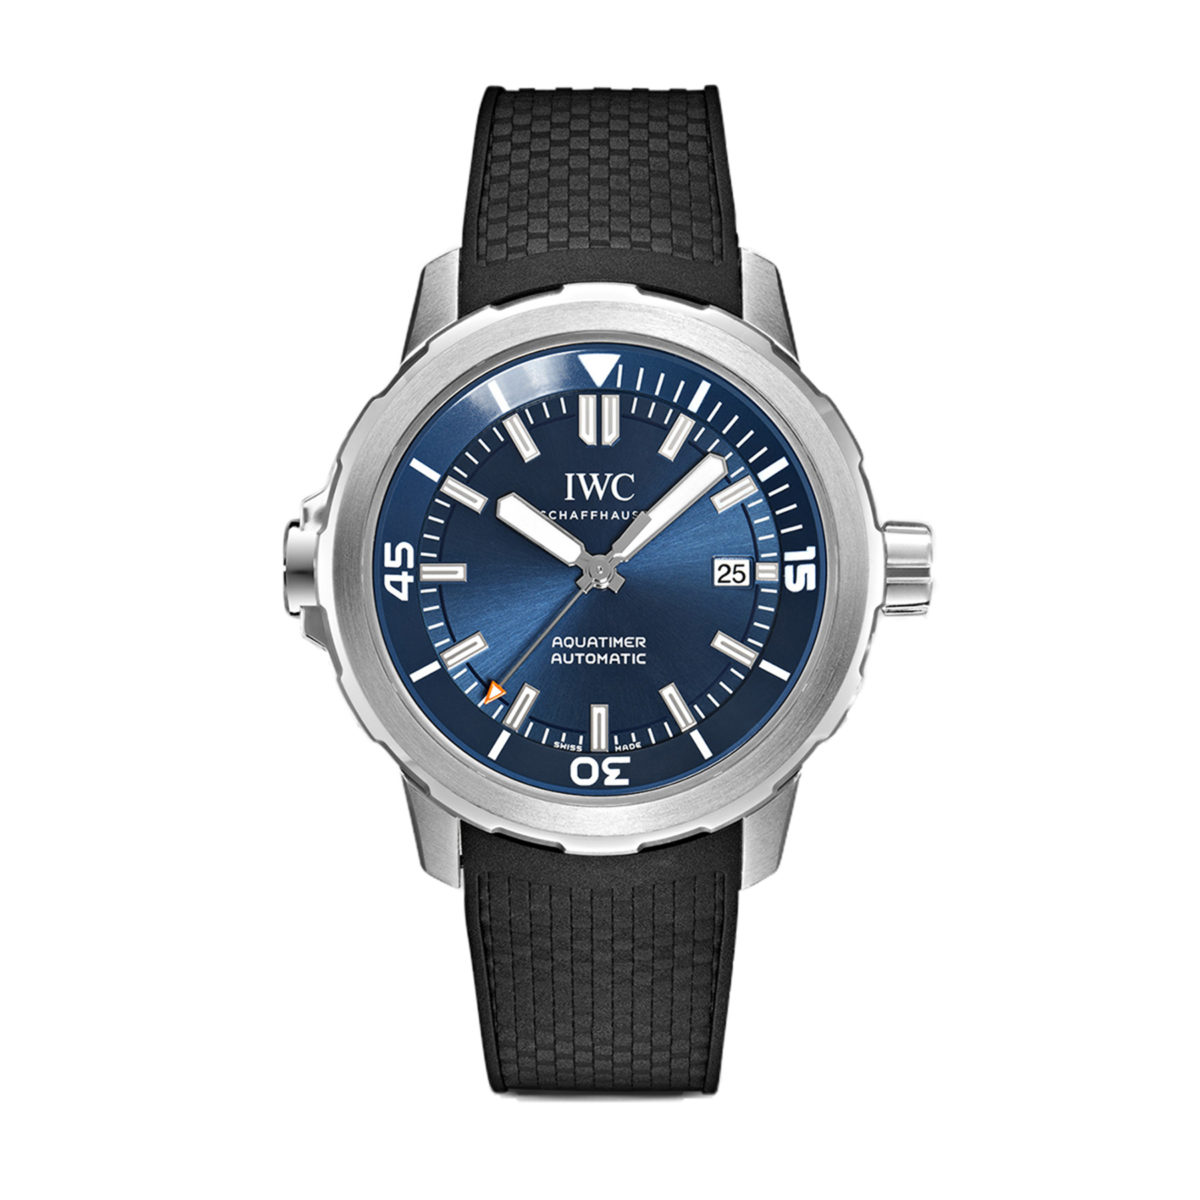 "IW329005 — IWC Schaffhausen Aquatimer Automatic Edition ""Expedition Jacques-Yves Cousteau"""